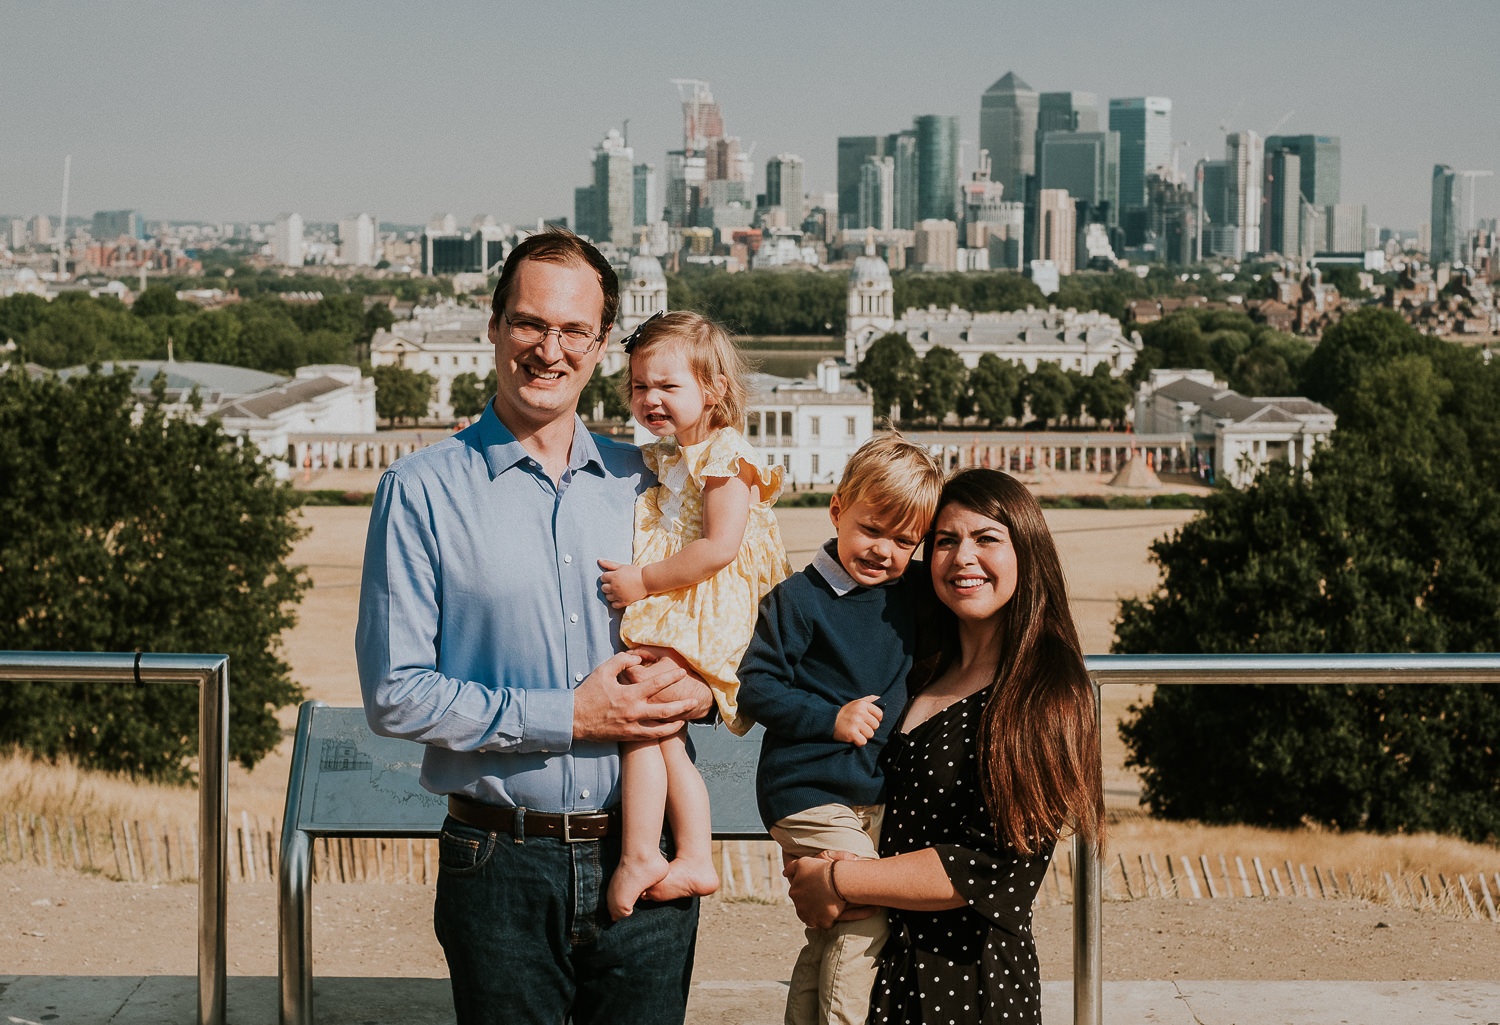 greenwich family photo shoot family portrait london skyline view